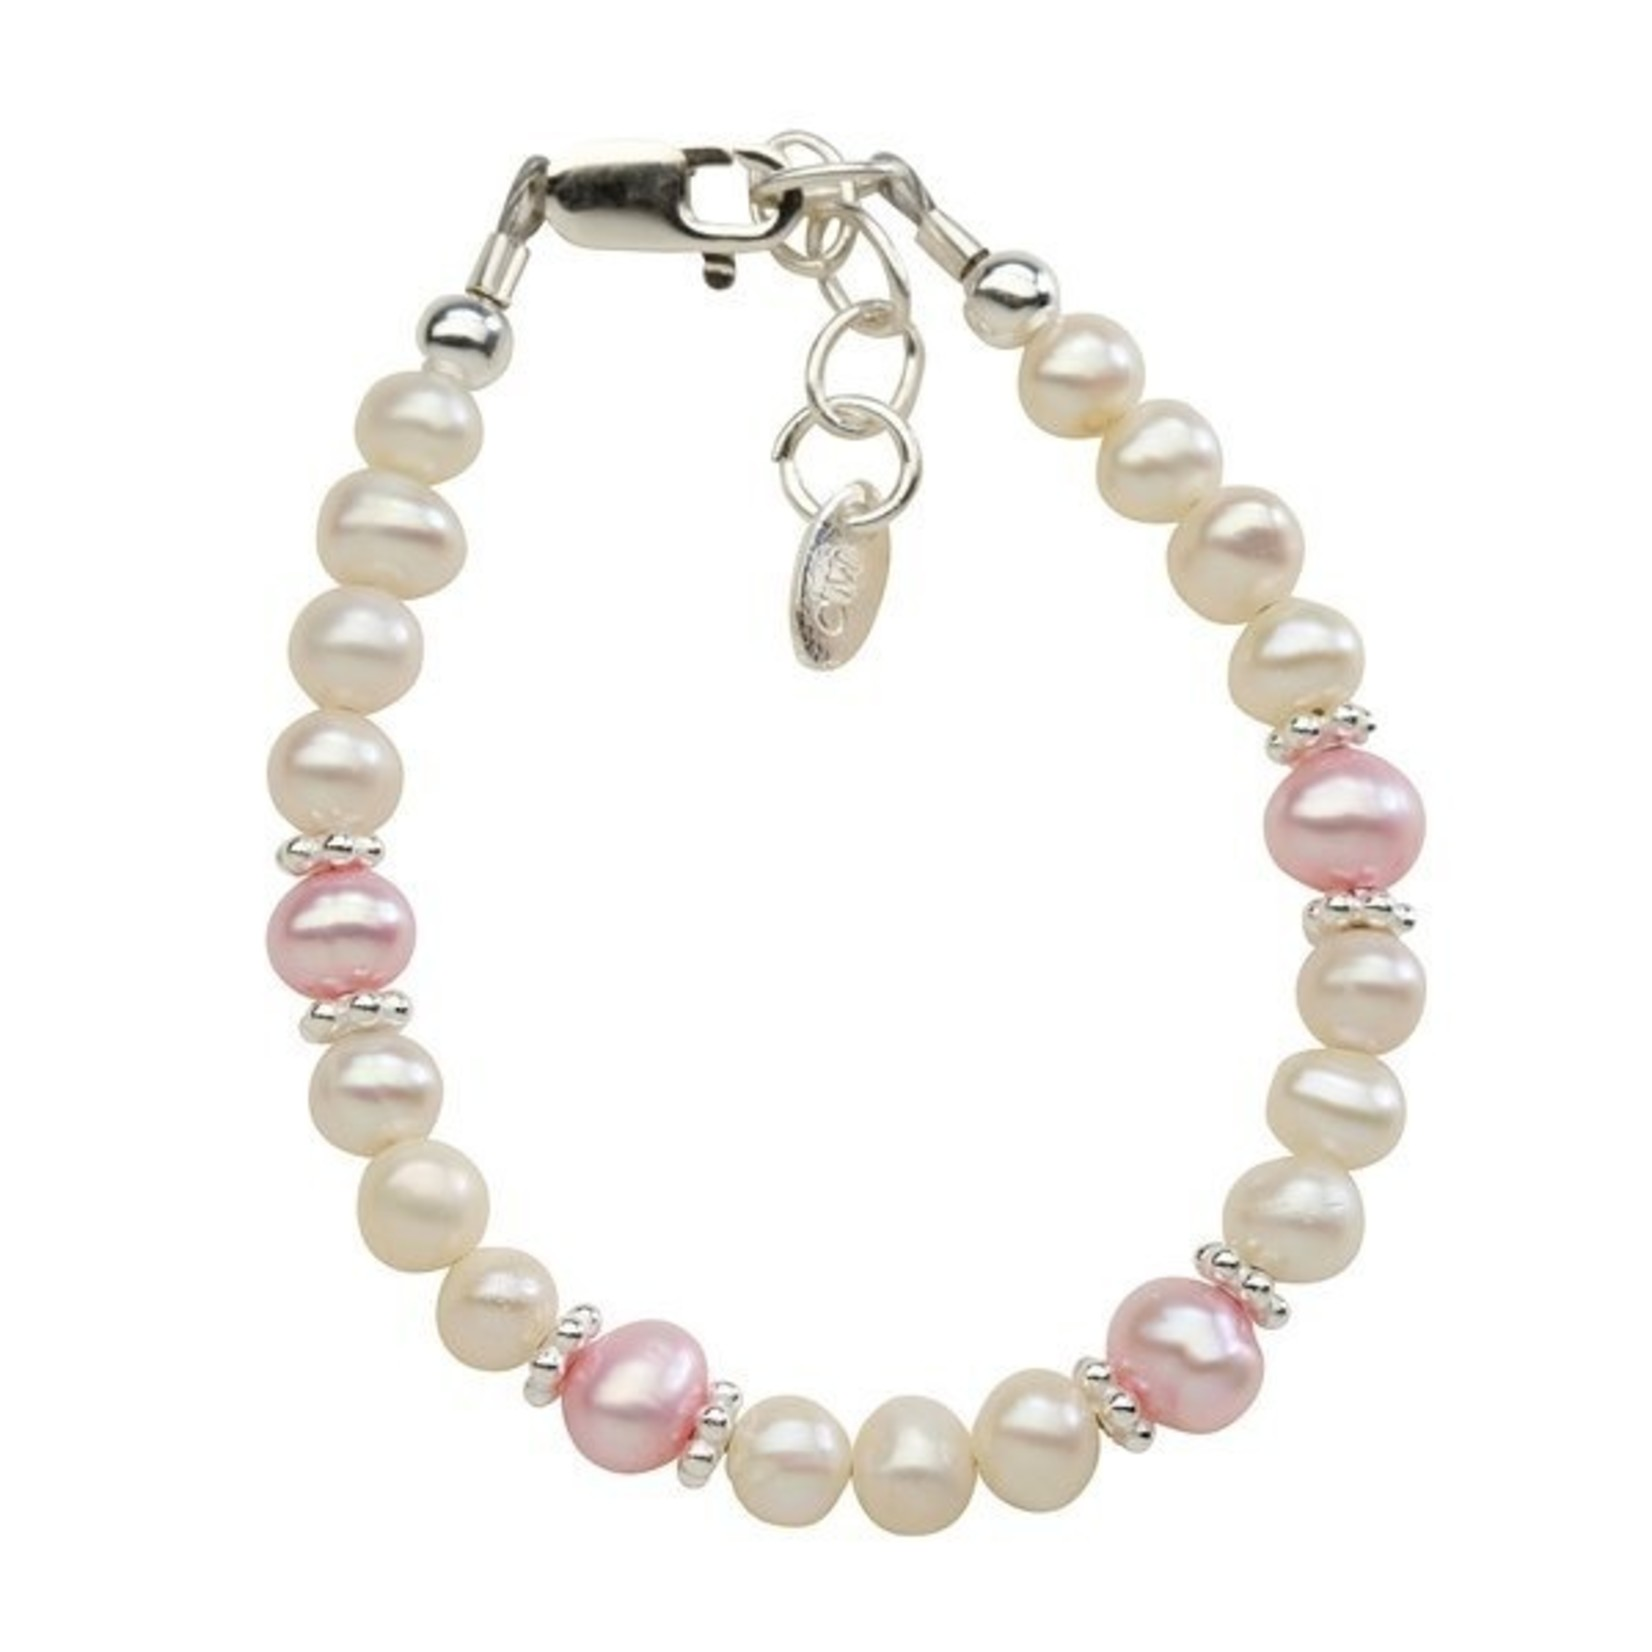 Cherished Moments Addie - (SM) Pink/white freshwater pearls